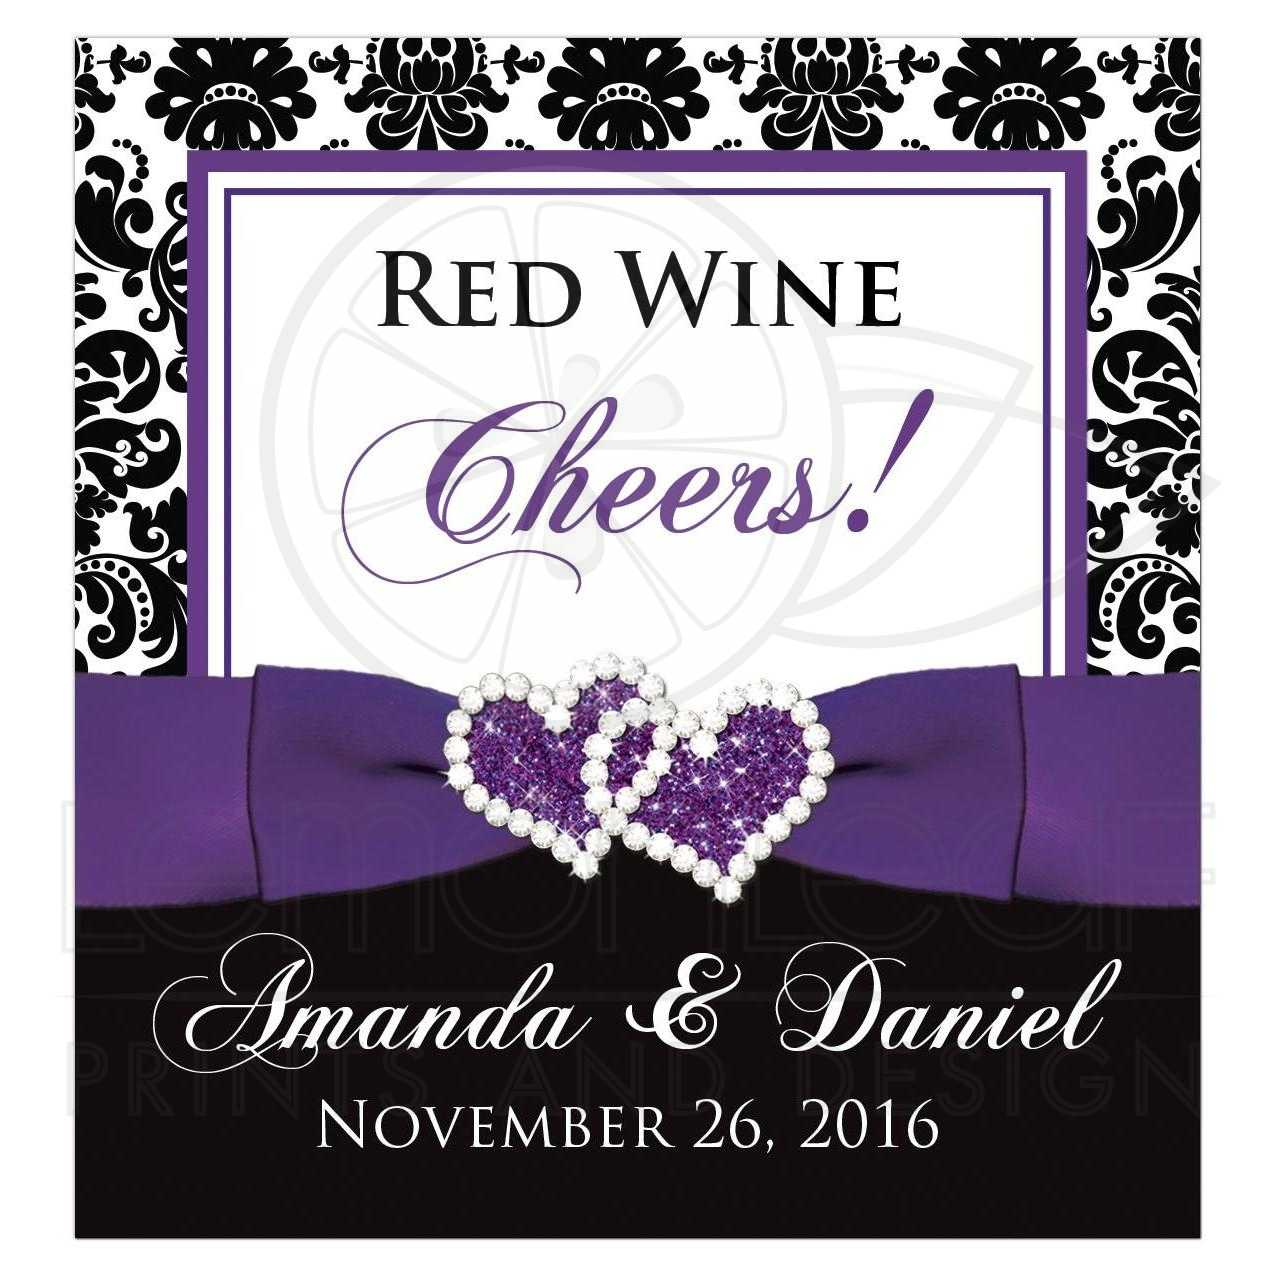 Wedding Wine Bottle Label 2 | Black and White Damask | Purple Ribbon | Joined Hearts